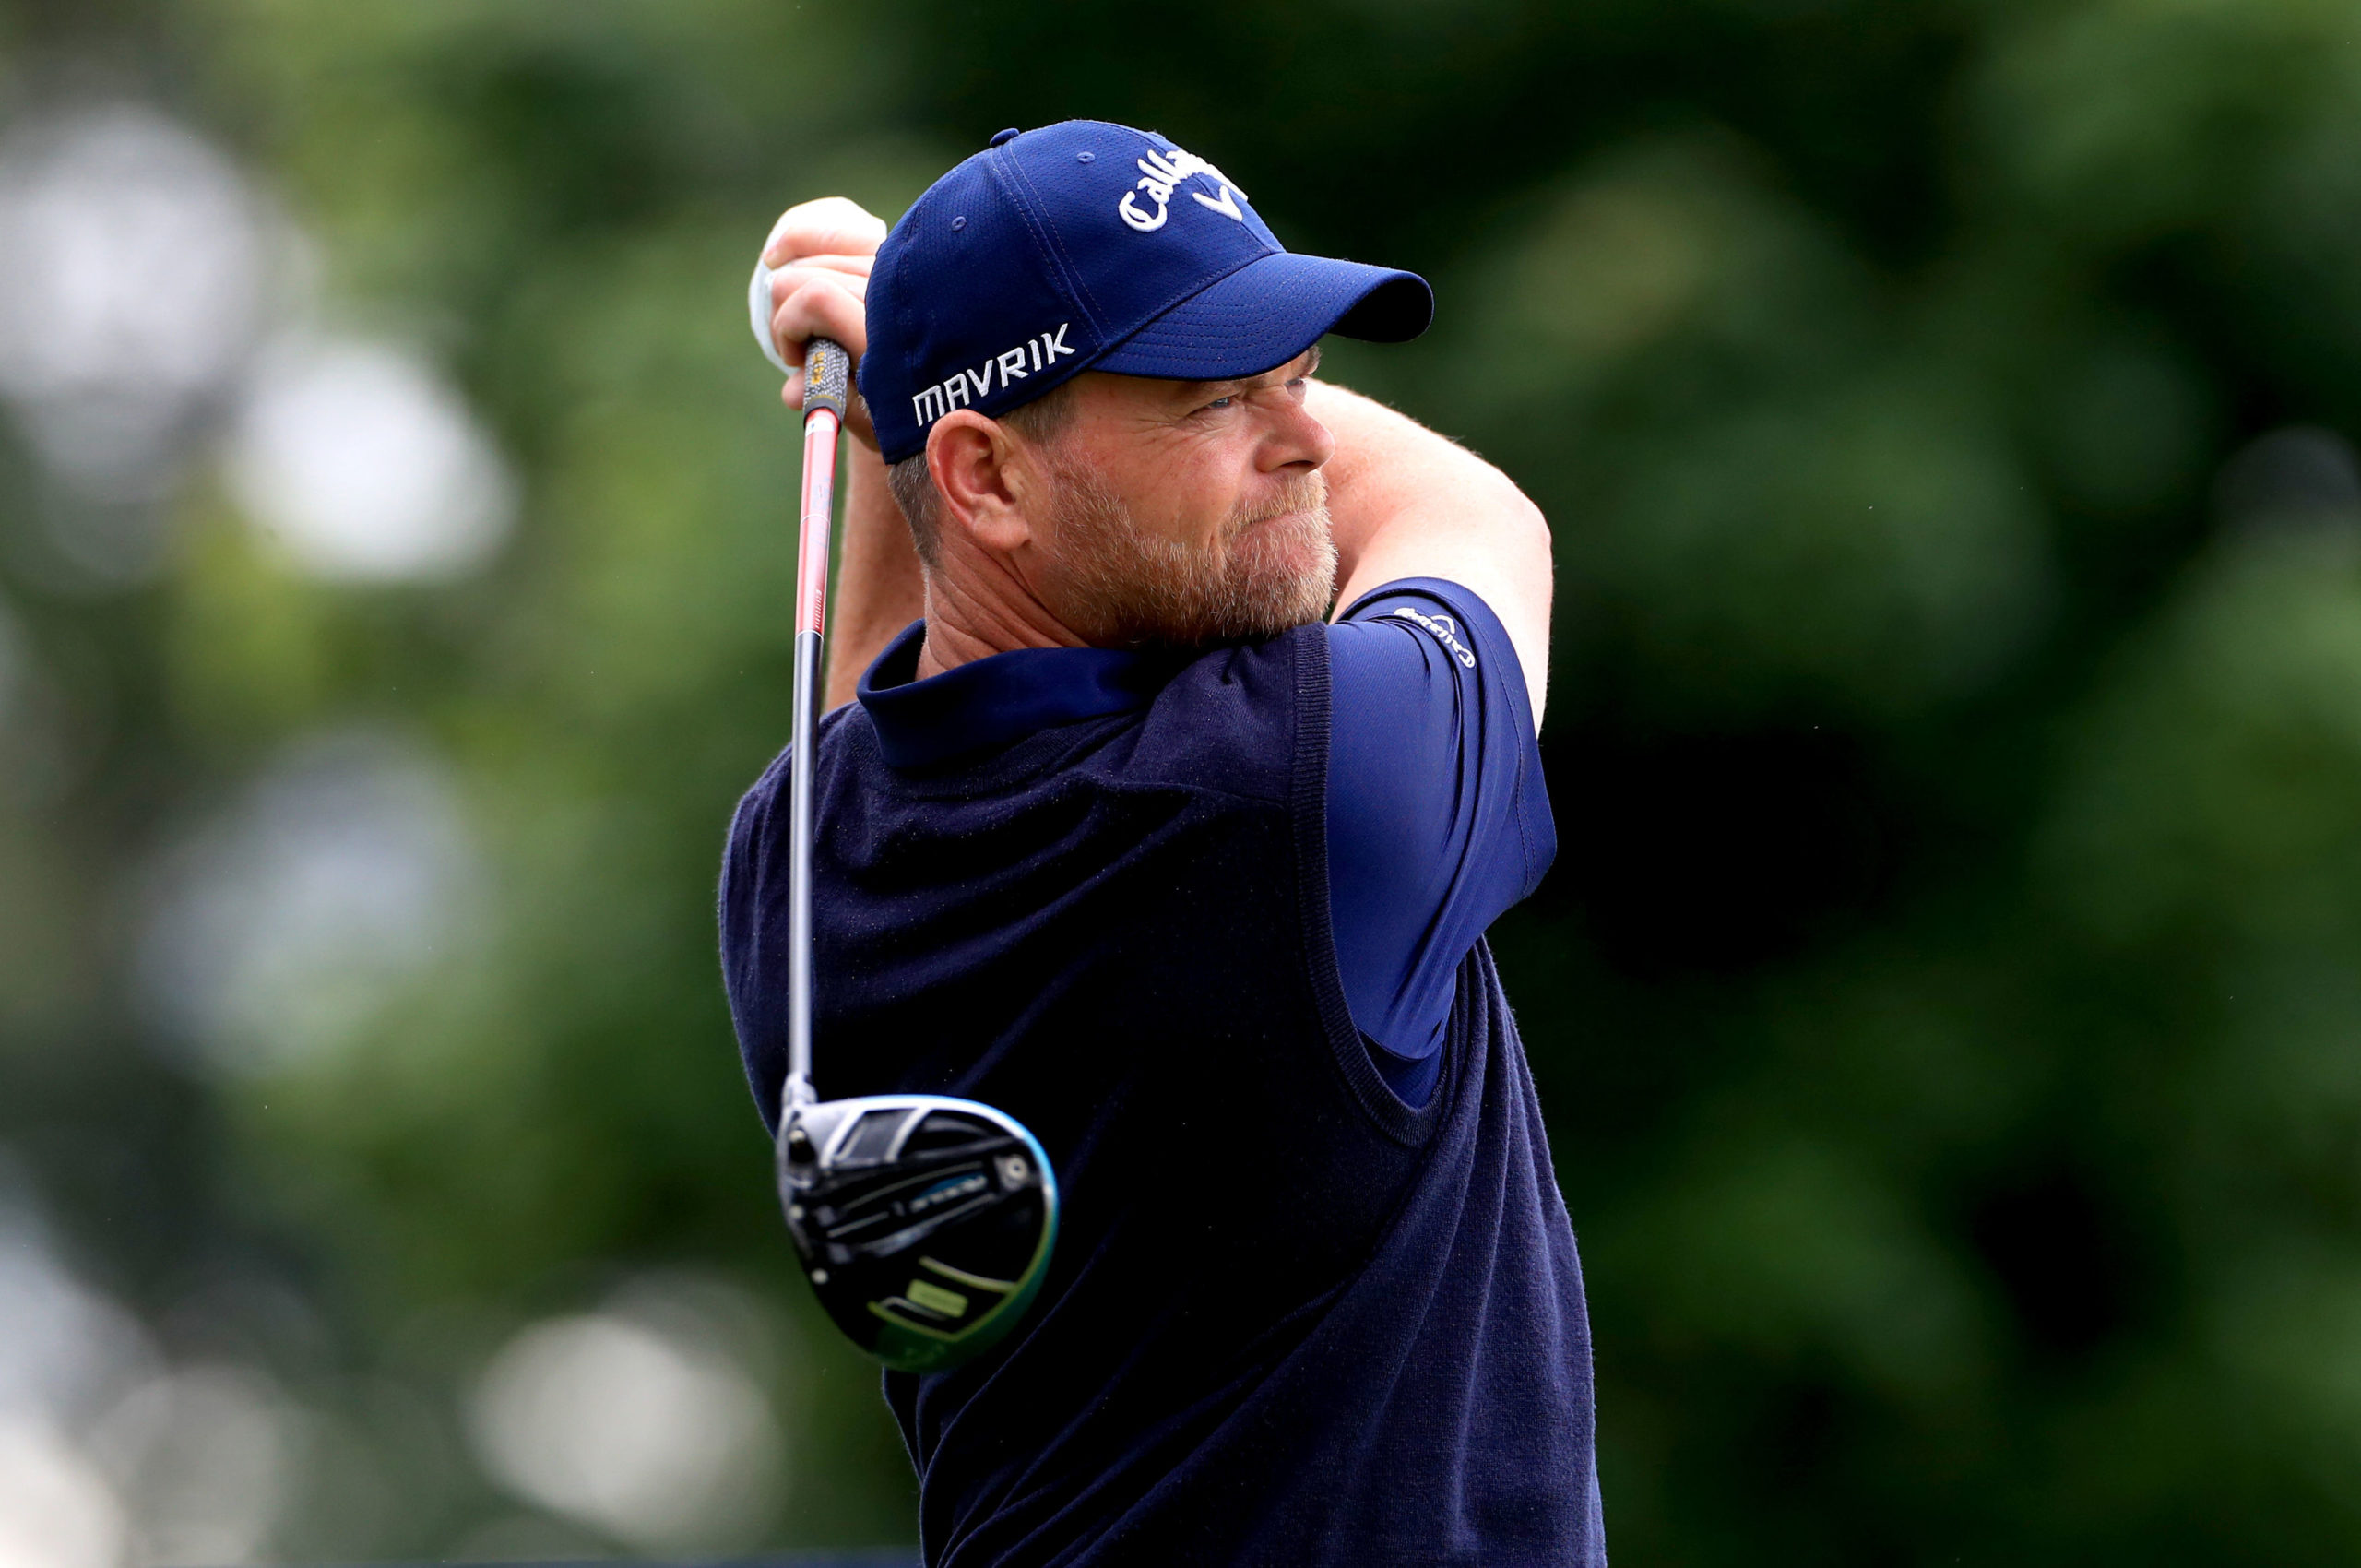 Scotland's David Drysdale hits 500 European Tour events this week.